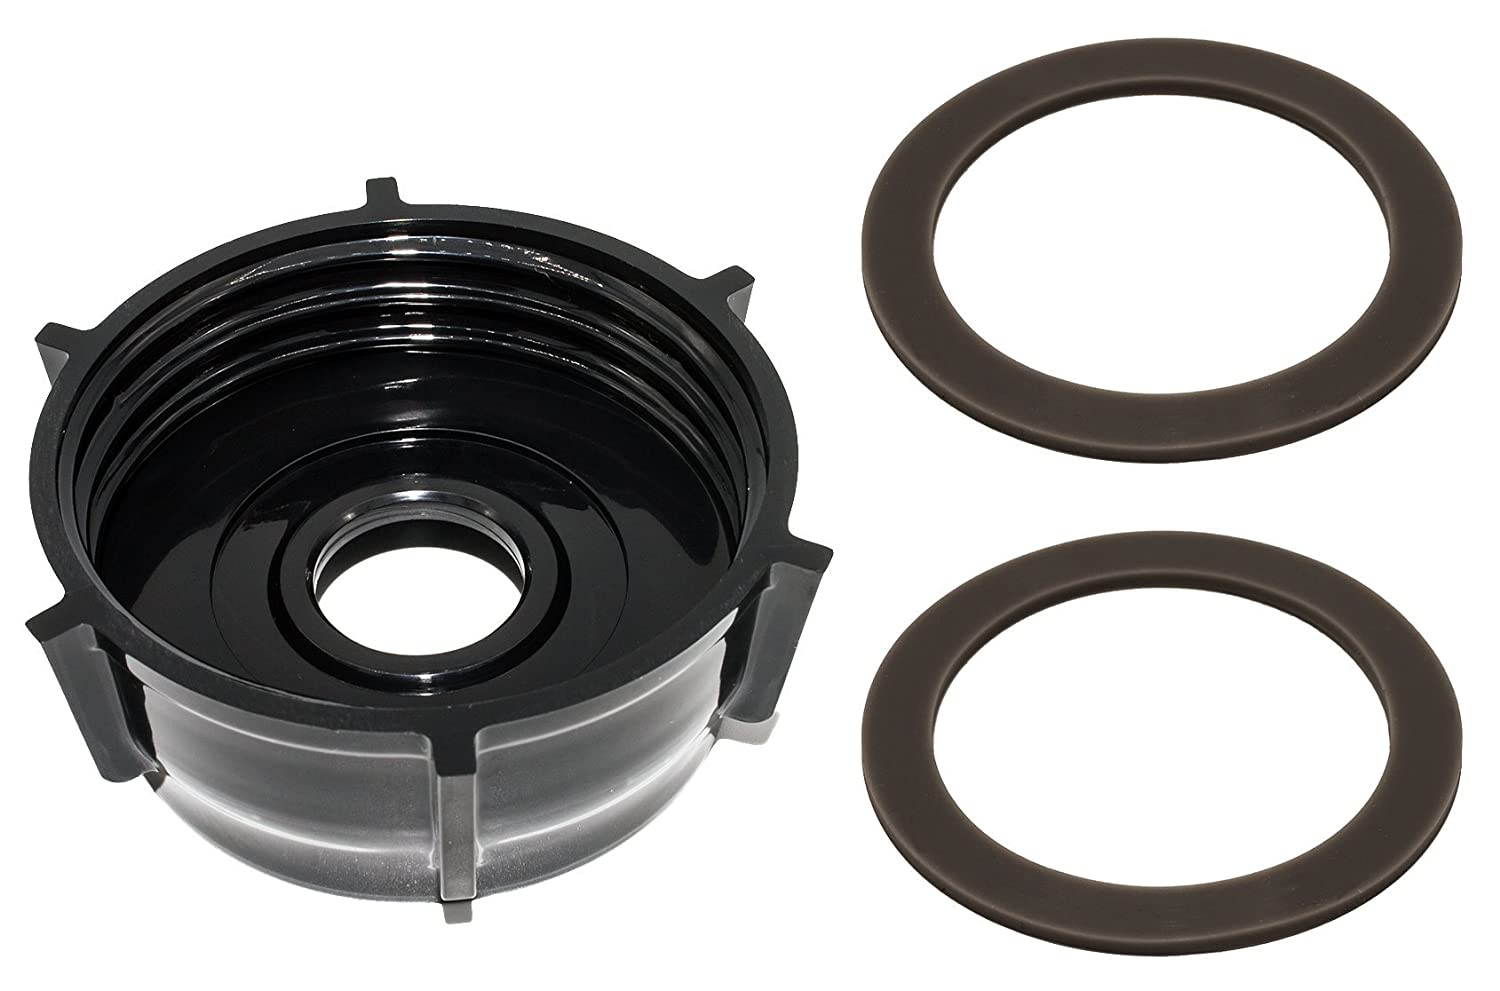 Blendin Blender Base Bottom Cap With 2 Rubber O Ring Gaskets, Fits Oster